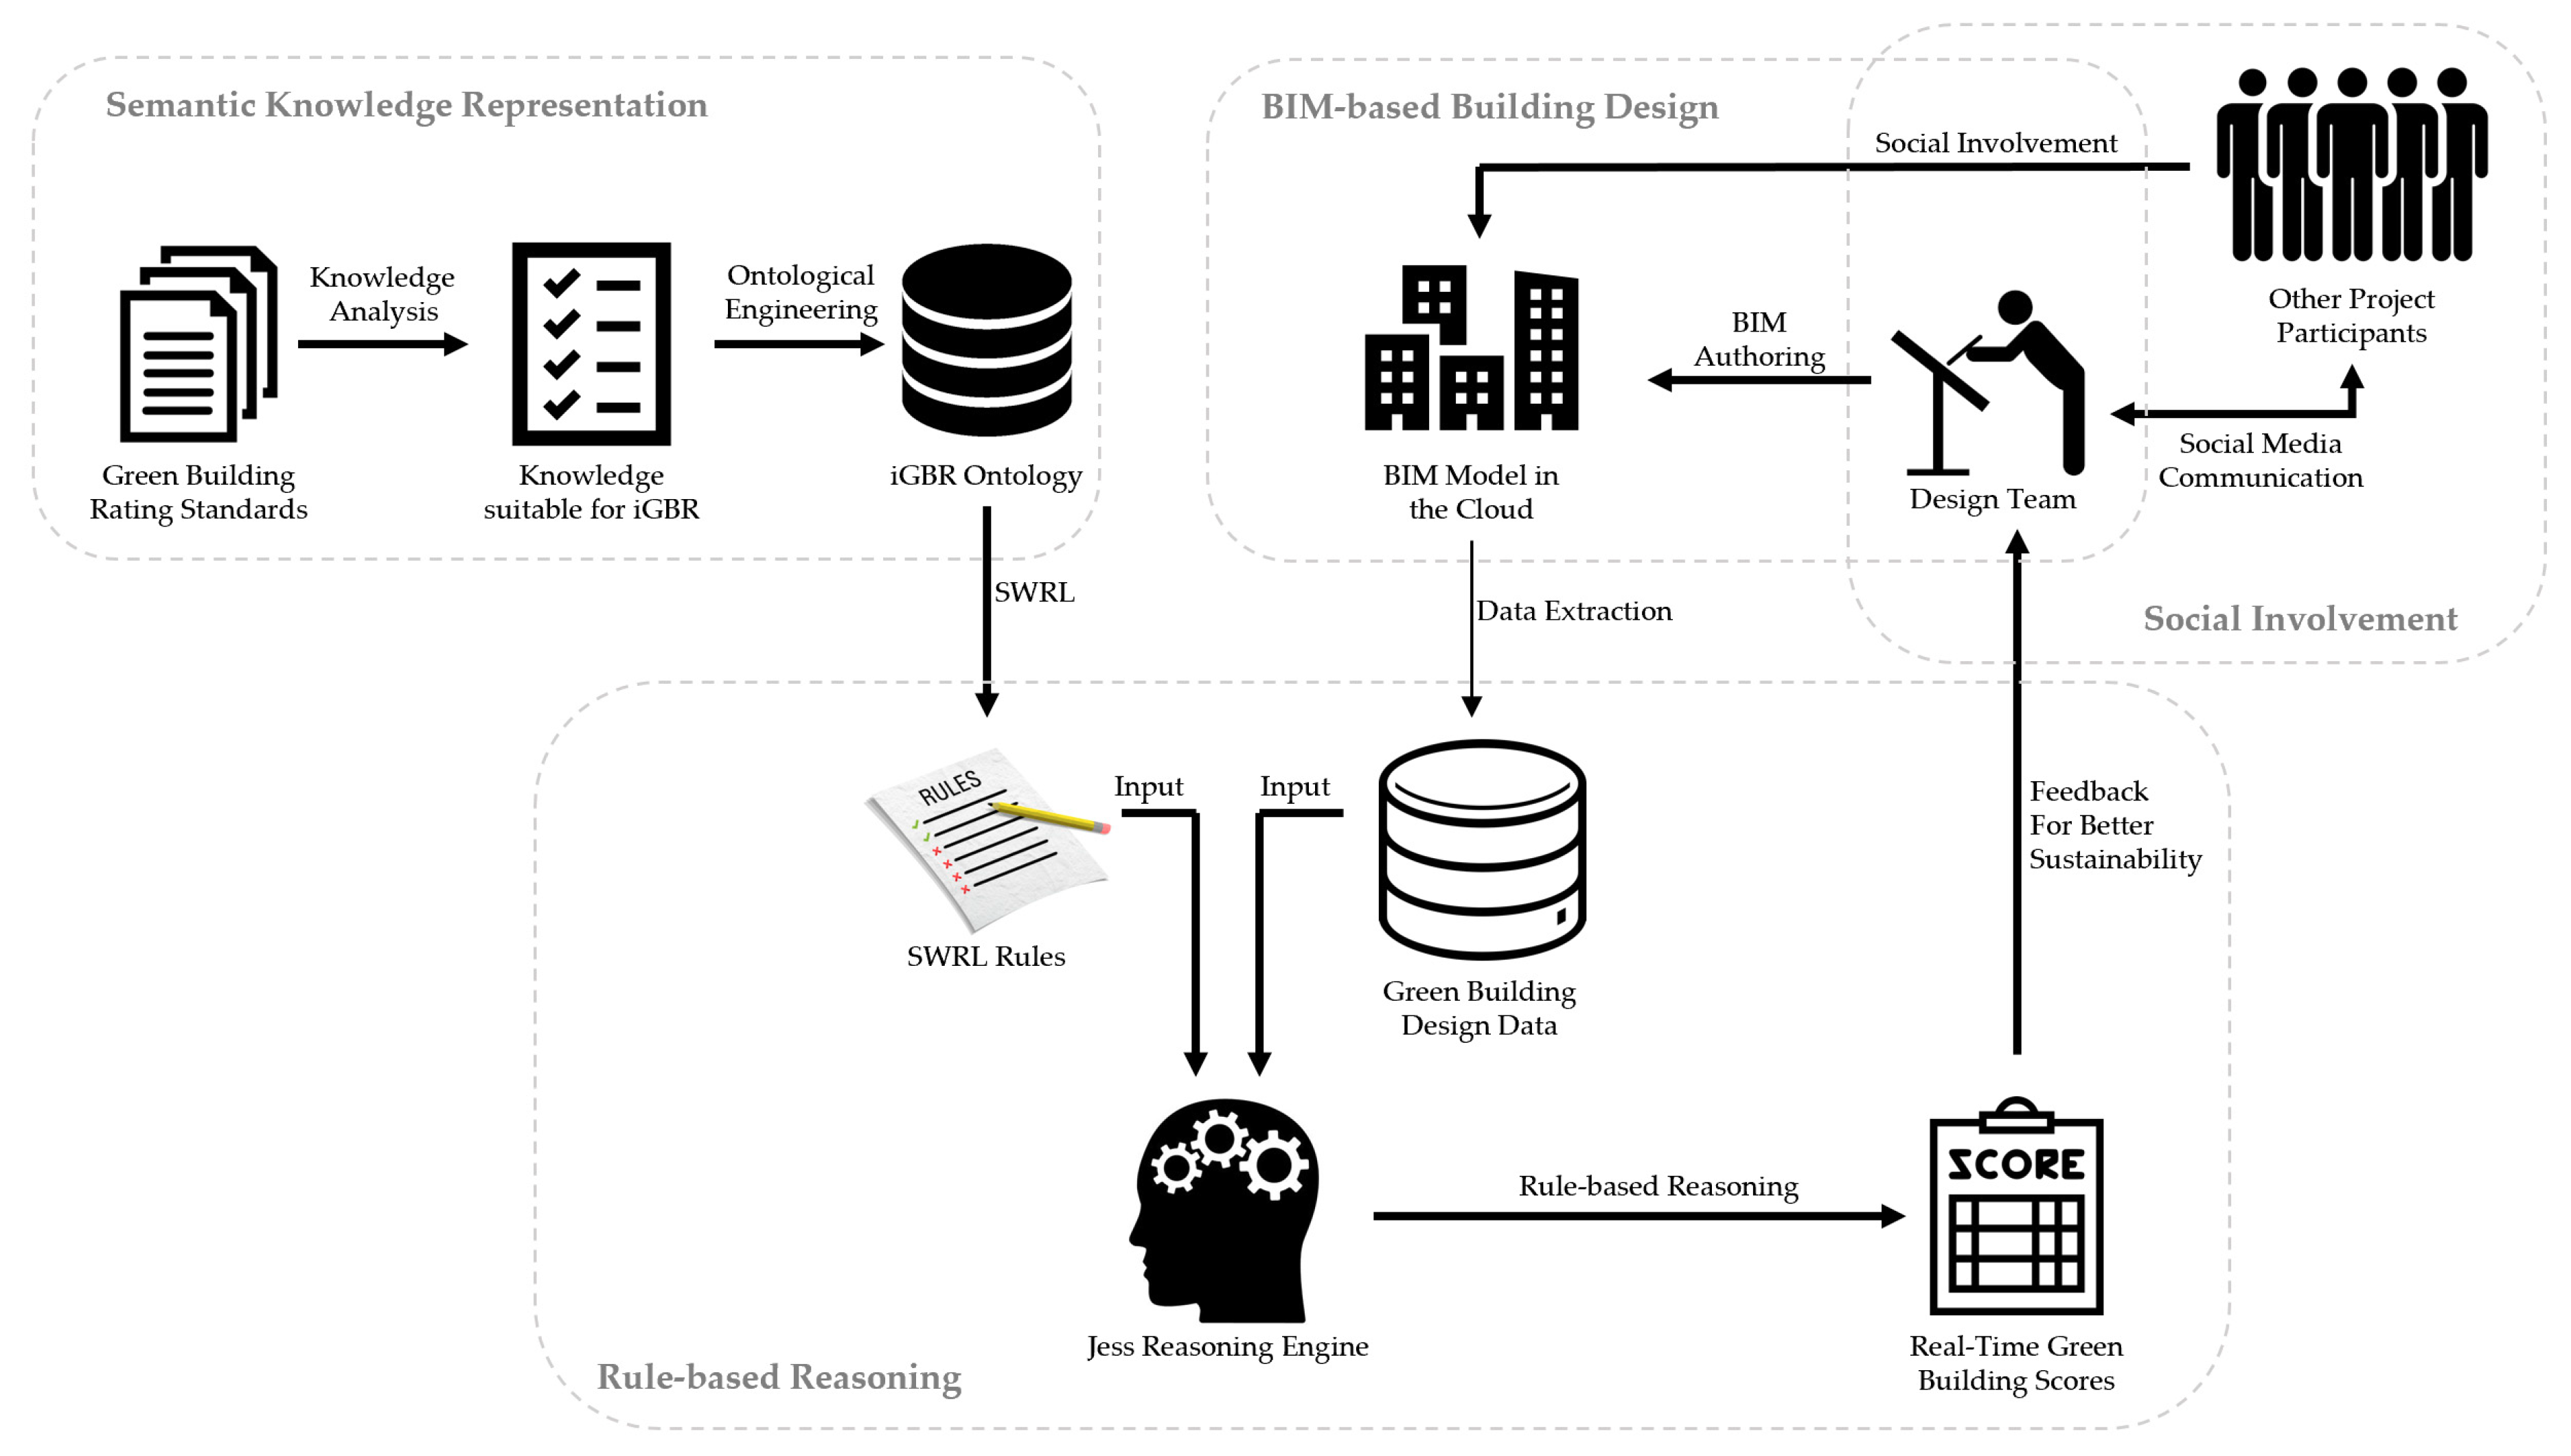 Sustainability Free Full Text A Semantic And Social Approach For Real Time Green Building Rating In Bim Based Design Html